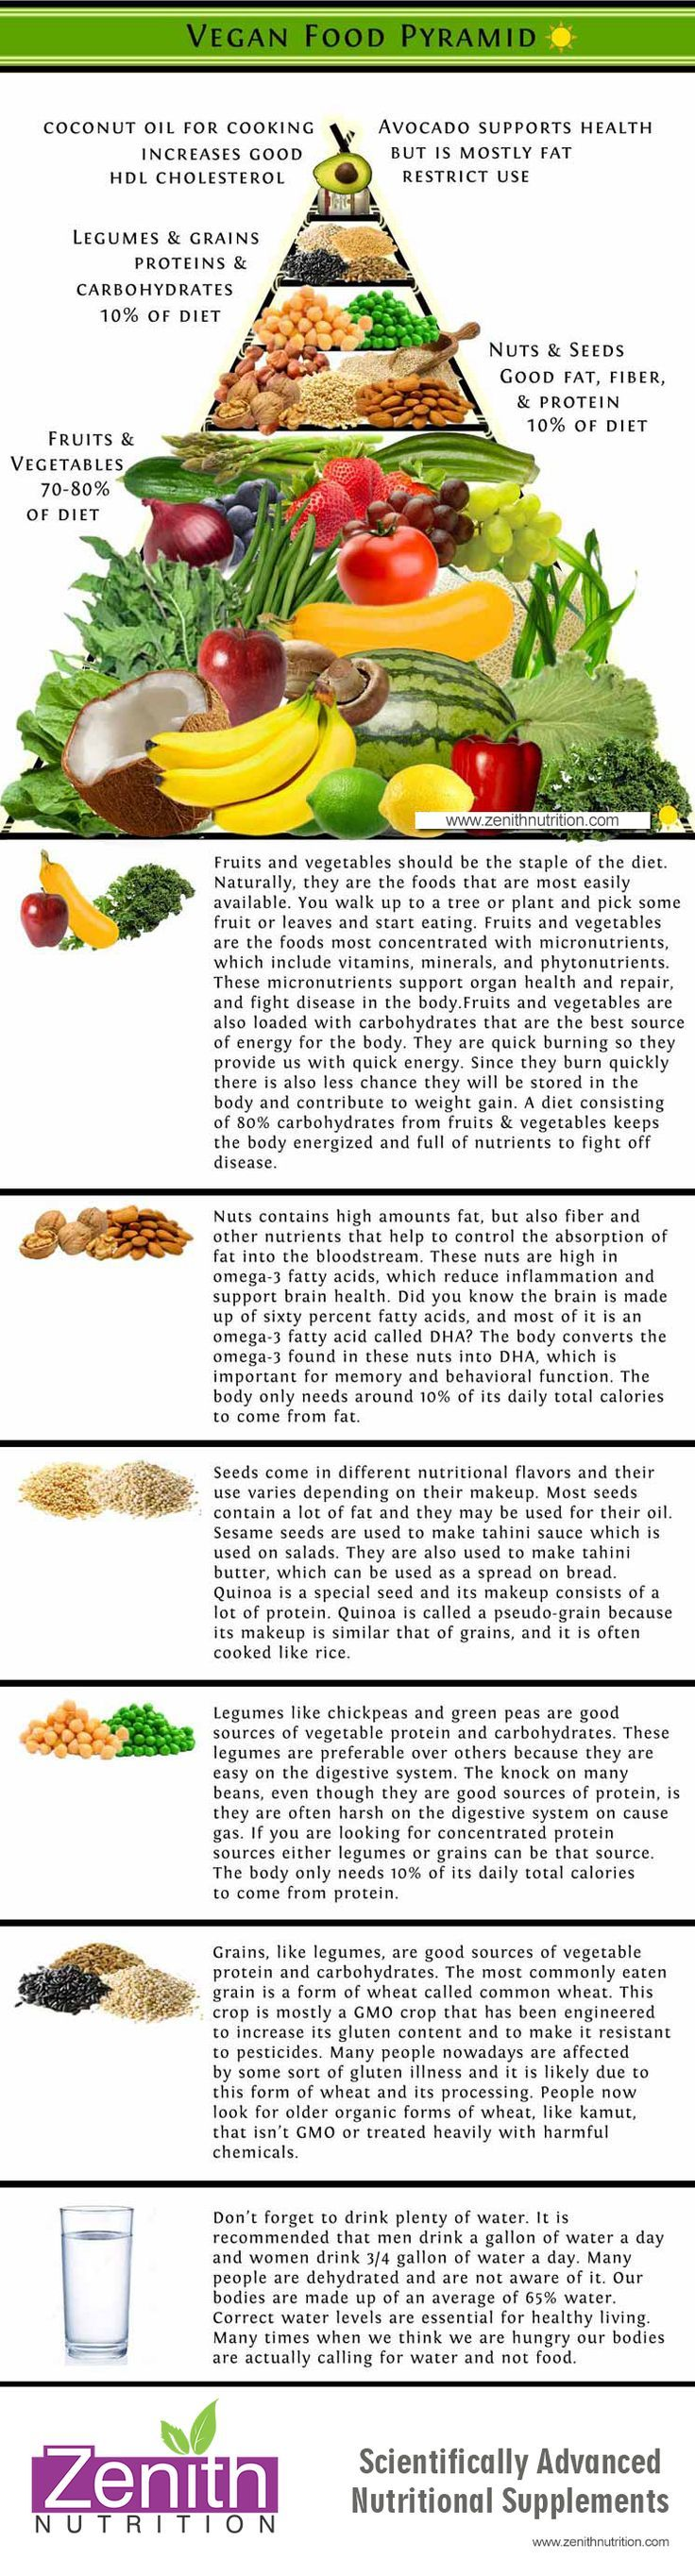 Vegan Food Pyramid. Fruits & Vegetables, Nuts, Seeds, Legumes, Grains, Plenty of water. Best supplements from Zenith Nutrition. Health Supplements. Nutritional Supplements. Health Infographics